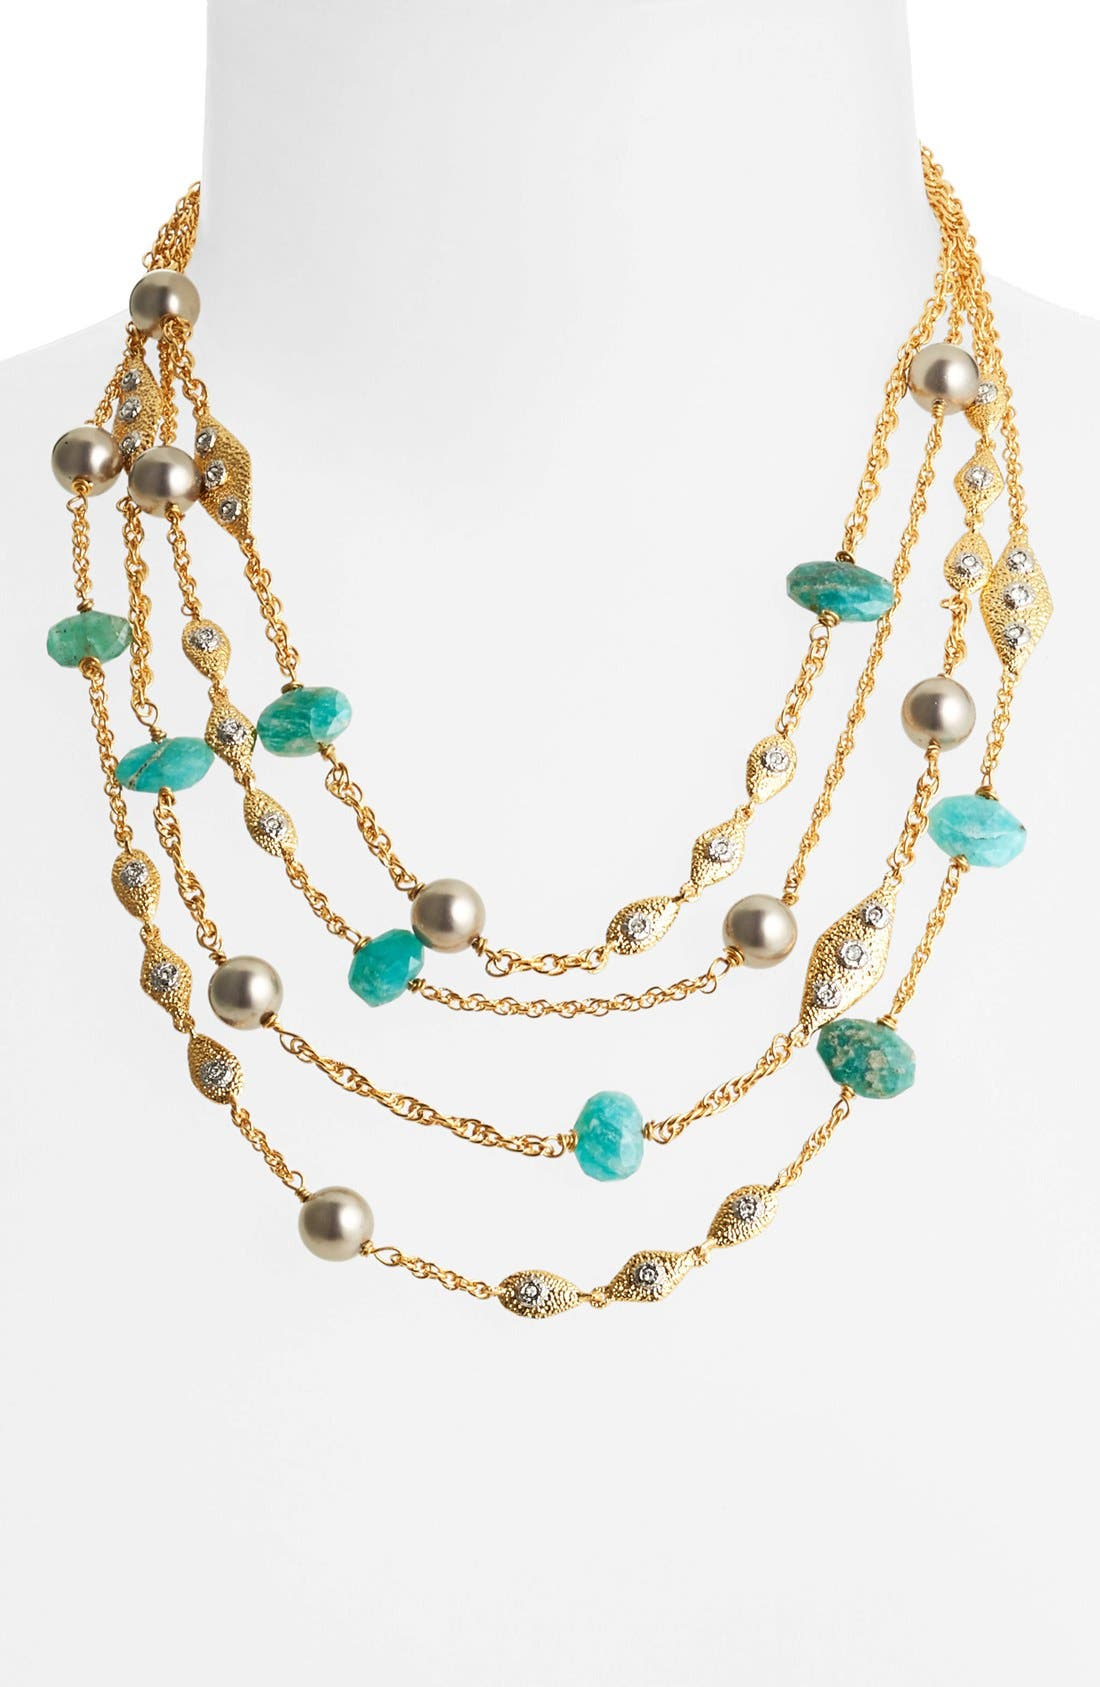 Main Image - Alexis Bittar 'Elements' Multistrand Necklace